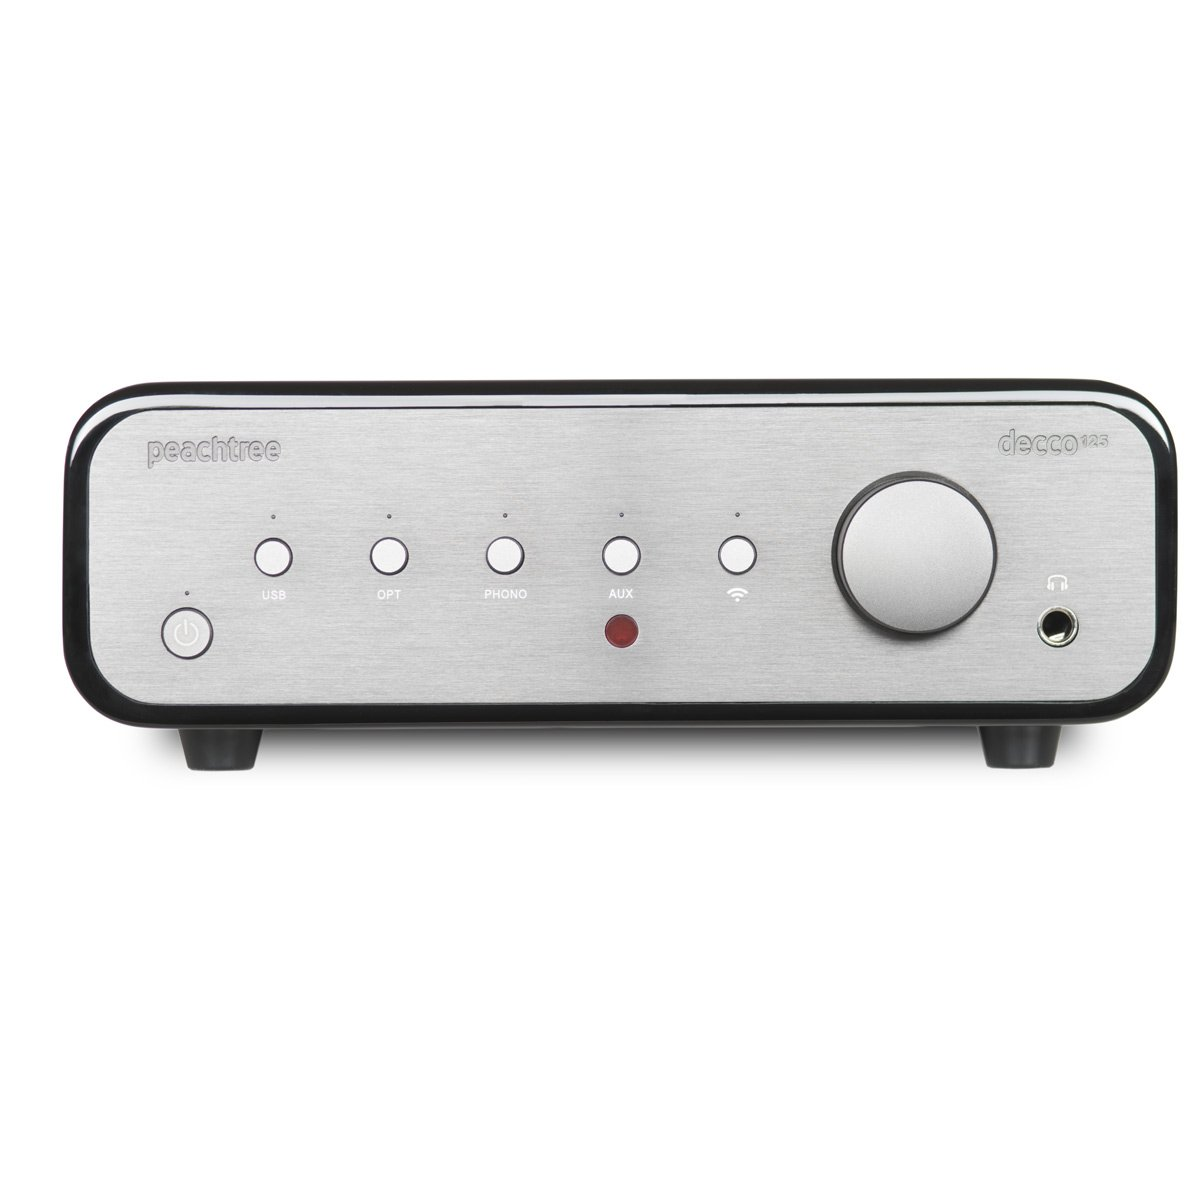 Peachtree Audio decco125 SKY Integrated Amplifier with Wireless Network Input Capability (Piano Black) by Peachtree Audio